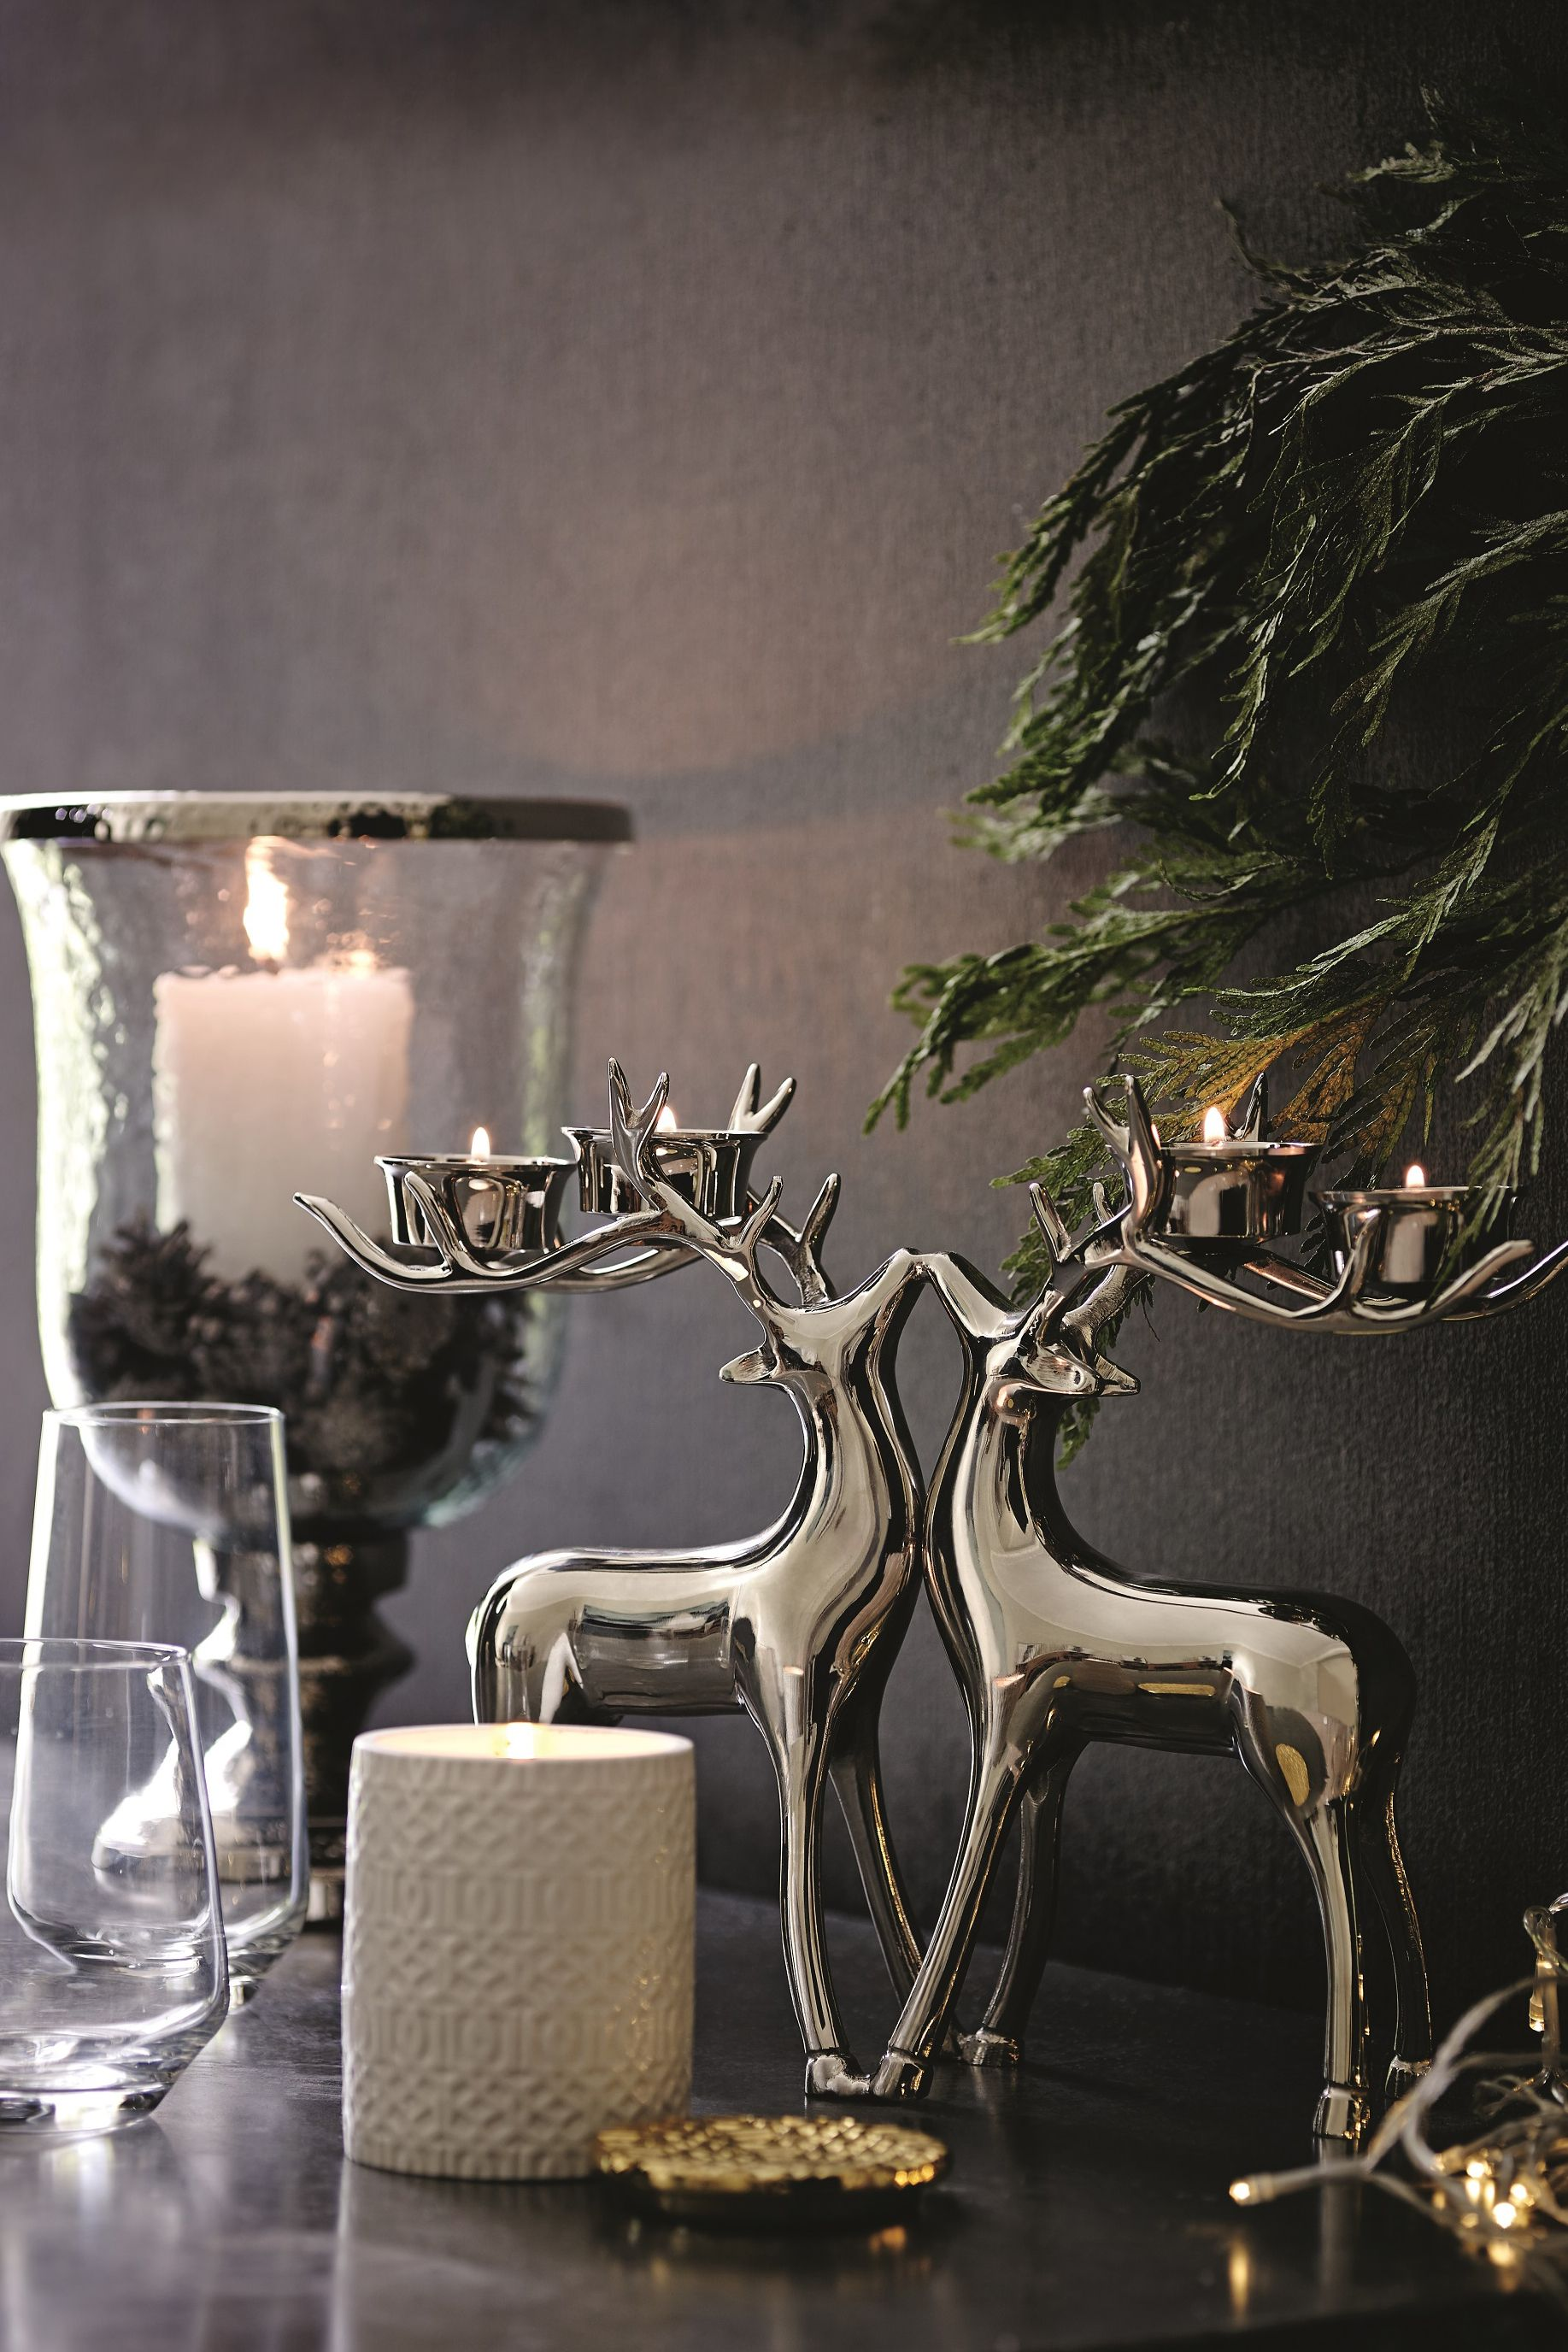 Fill your home with stylish and sophisticated seasonal ornaments and